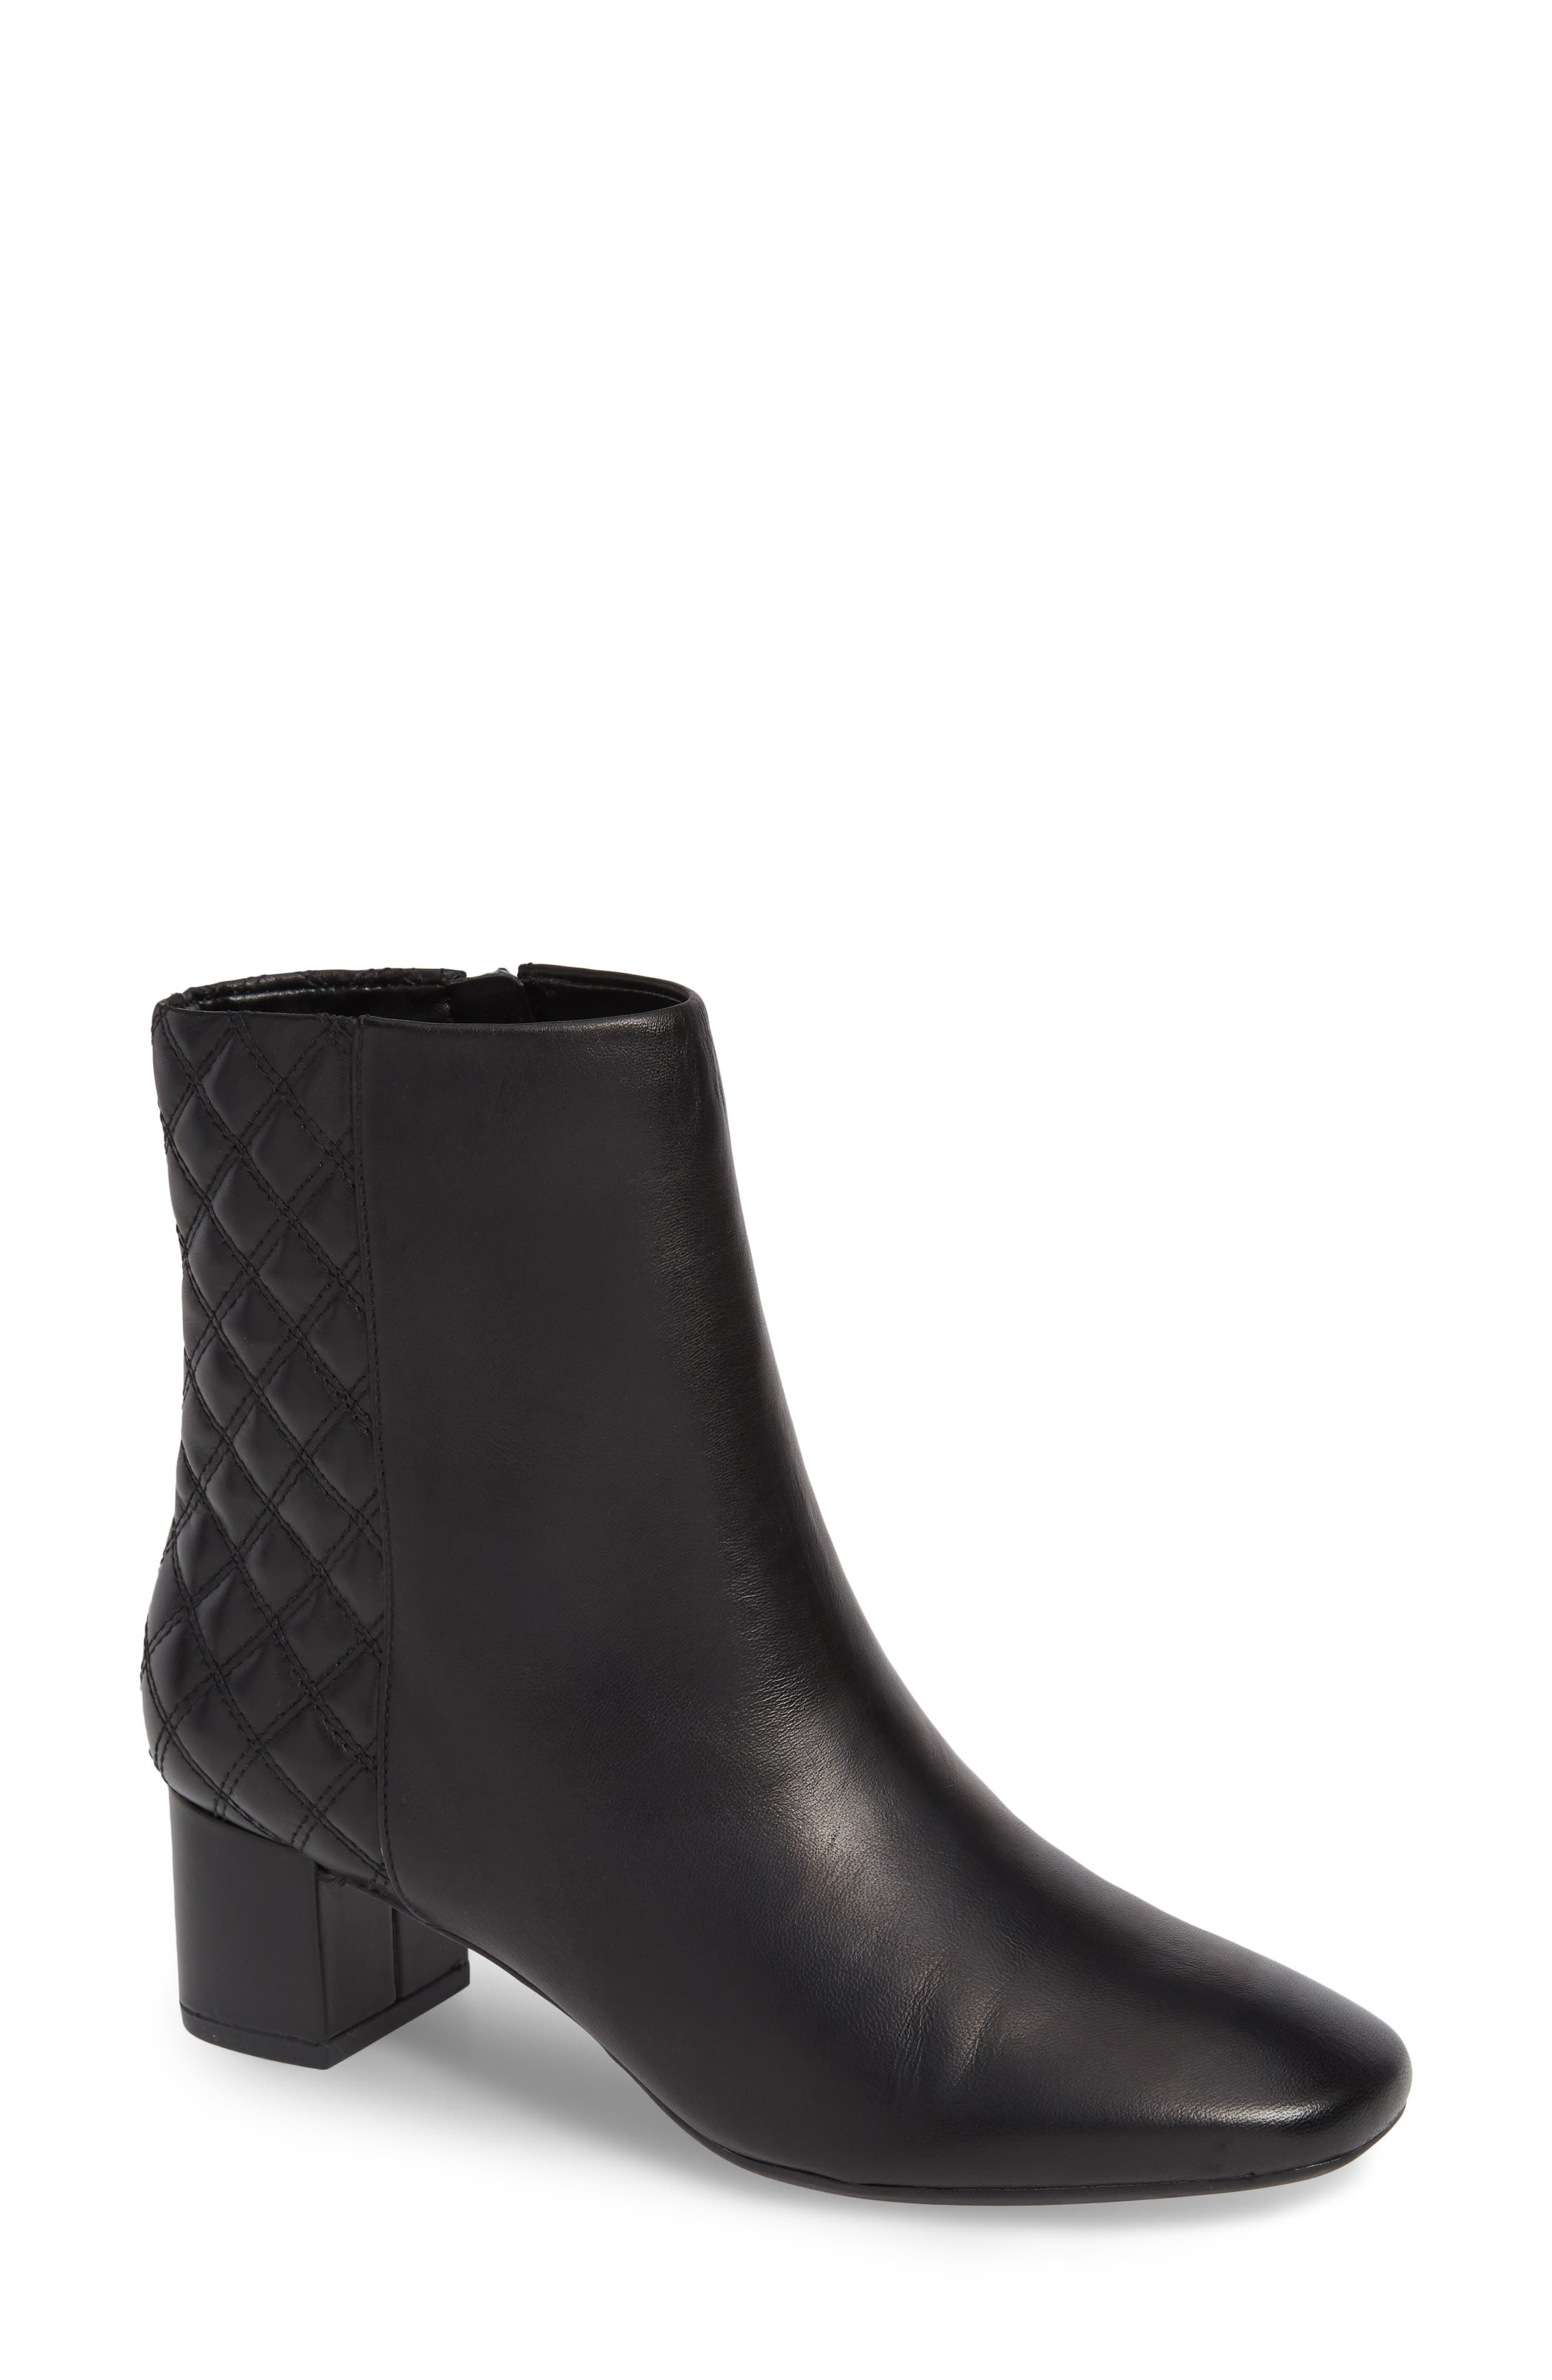 CLARKS<SUP>®</SUP> Tealia Luck Bootie, Main, color, BLACK LEATHER